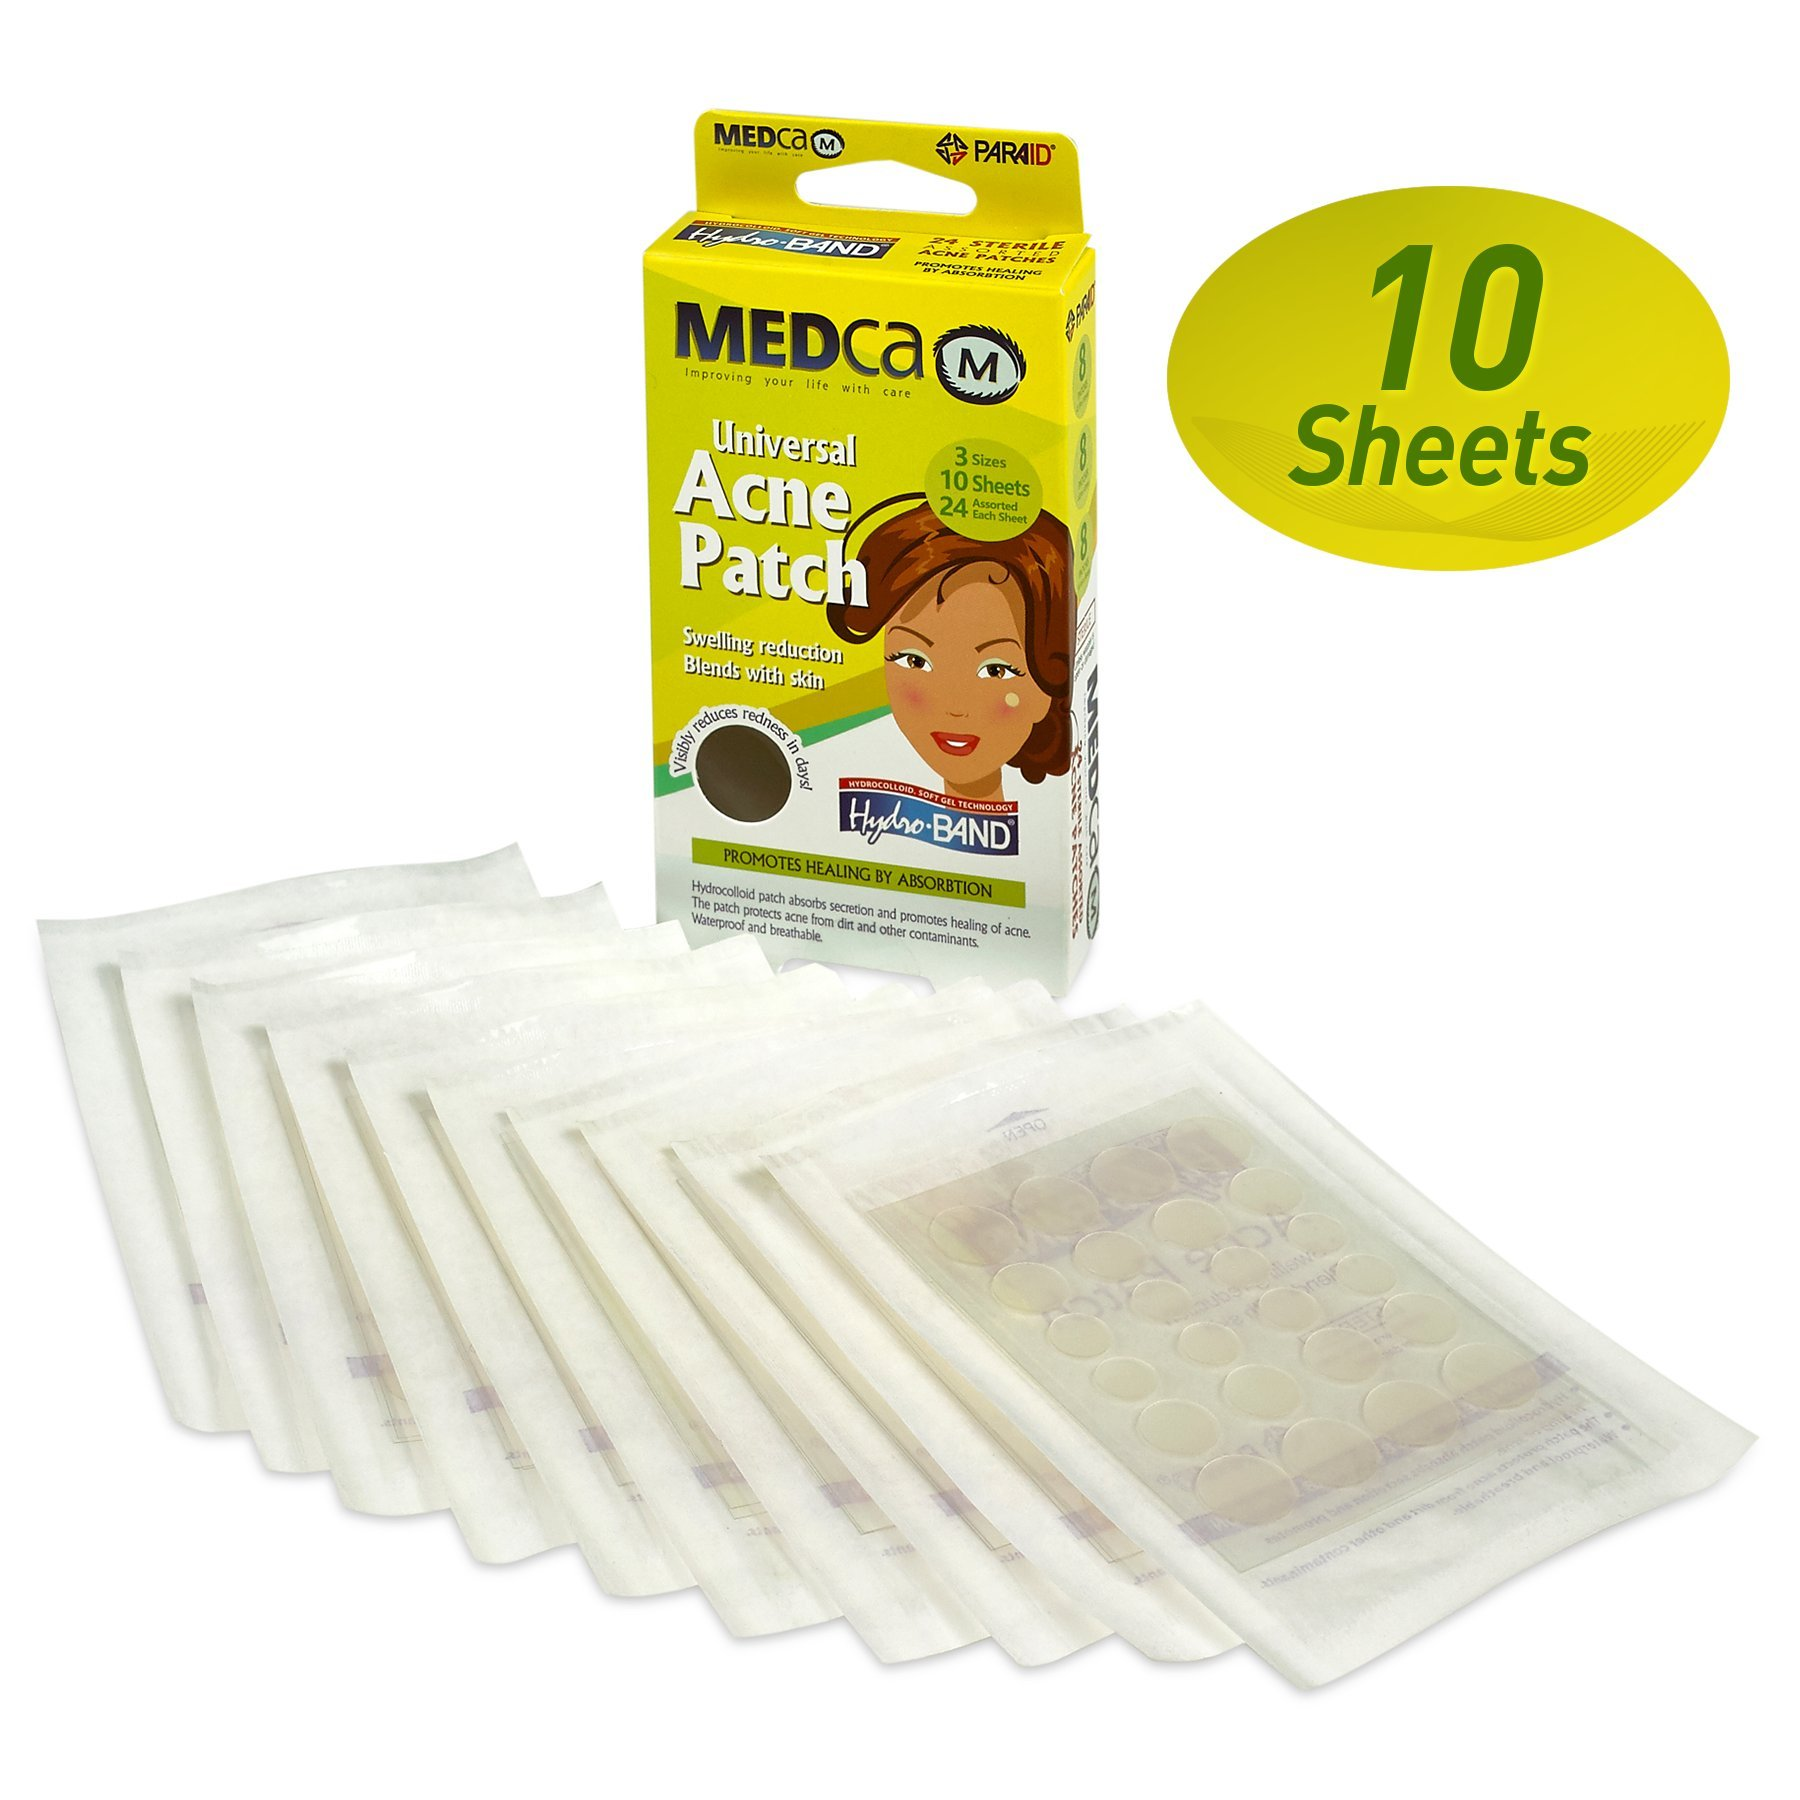 MEDca Acne Pimple Master Patch Absorbing Cover 24 Count Three Sizes 10 Sheets by MEDca